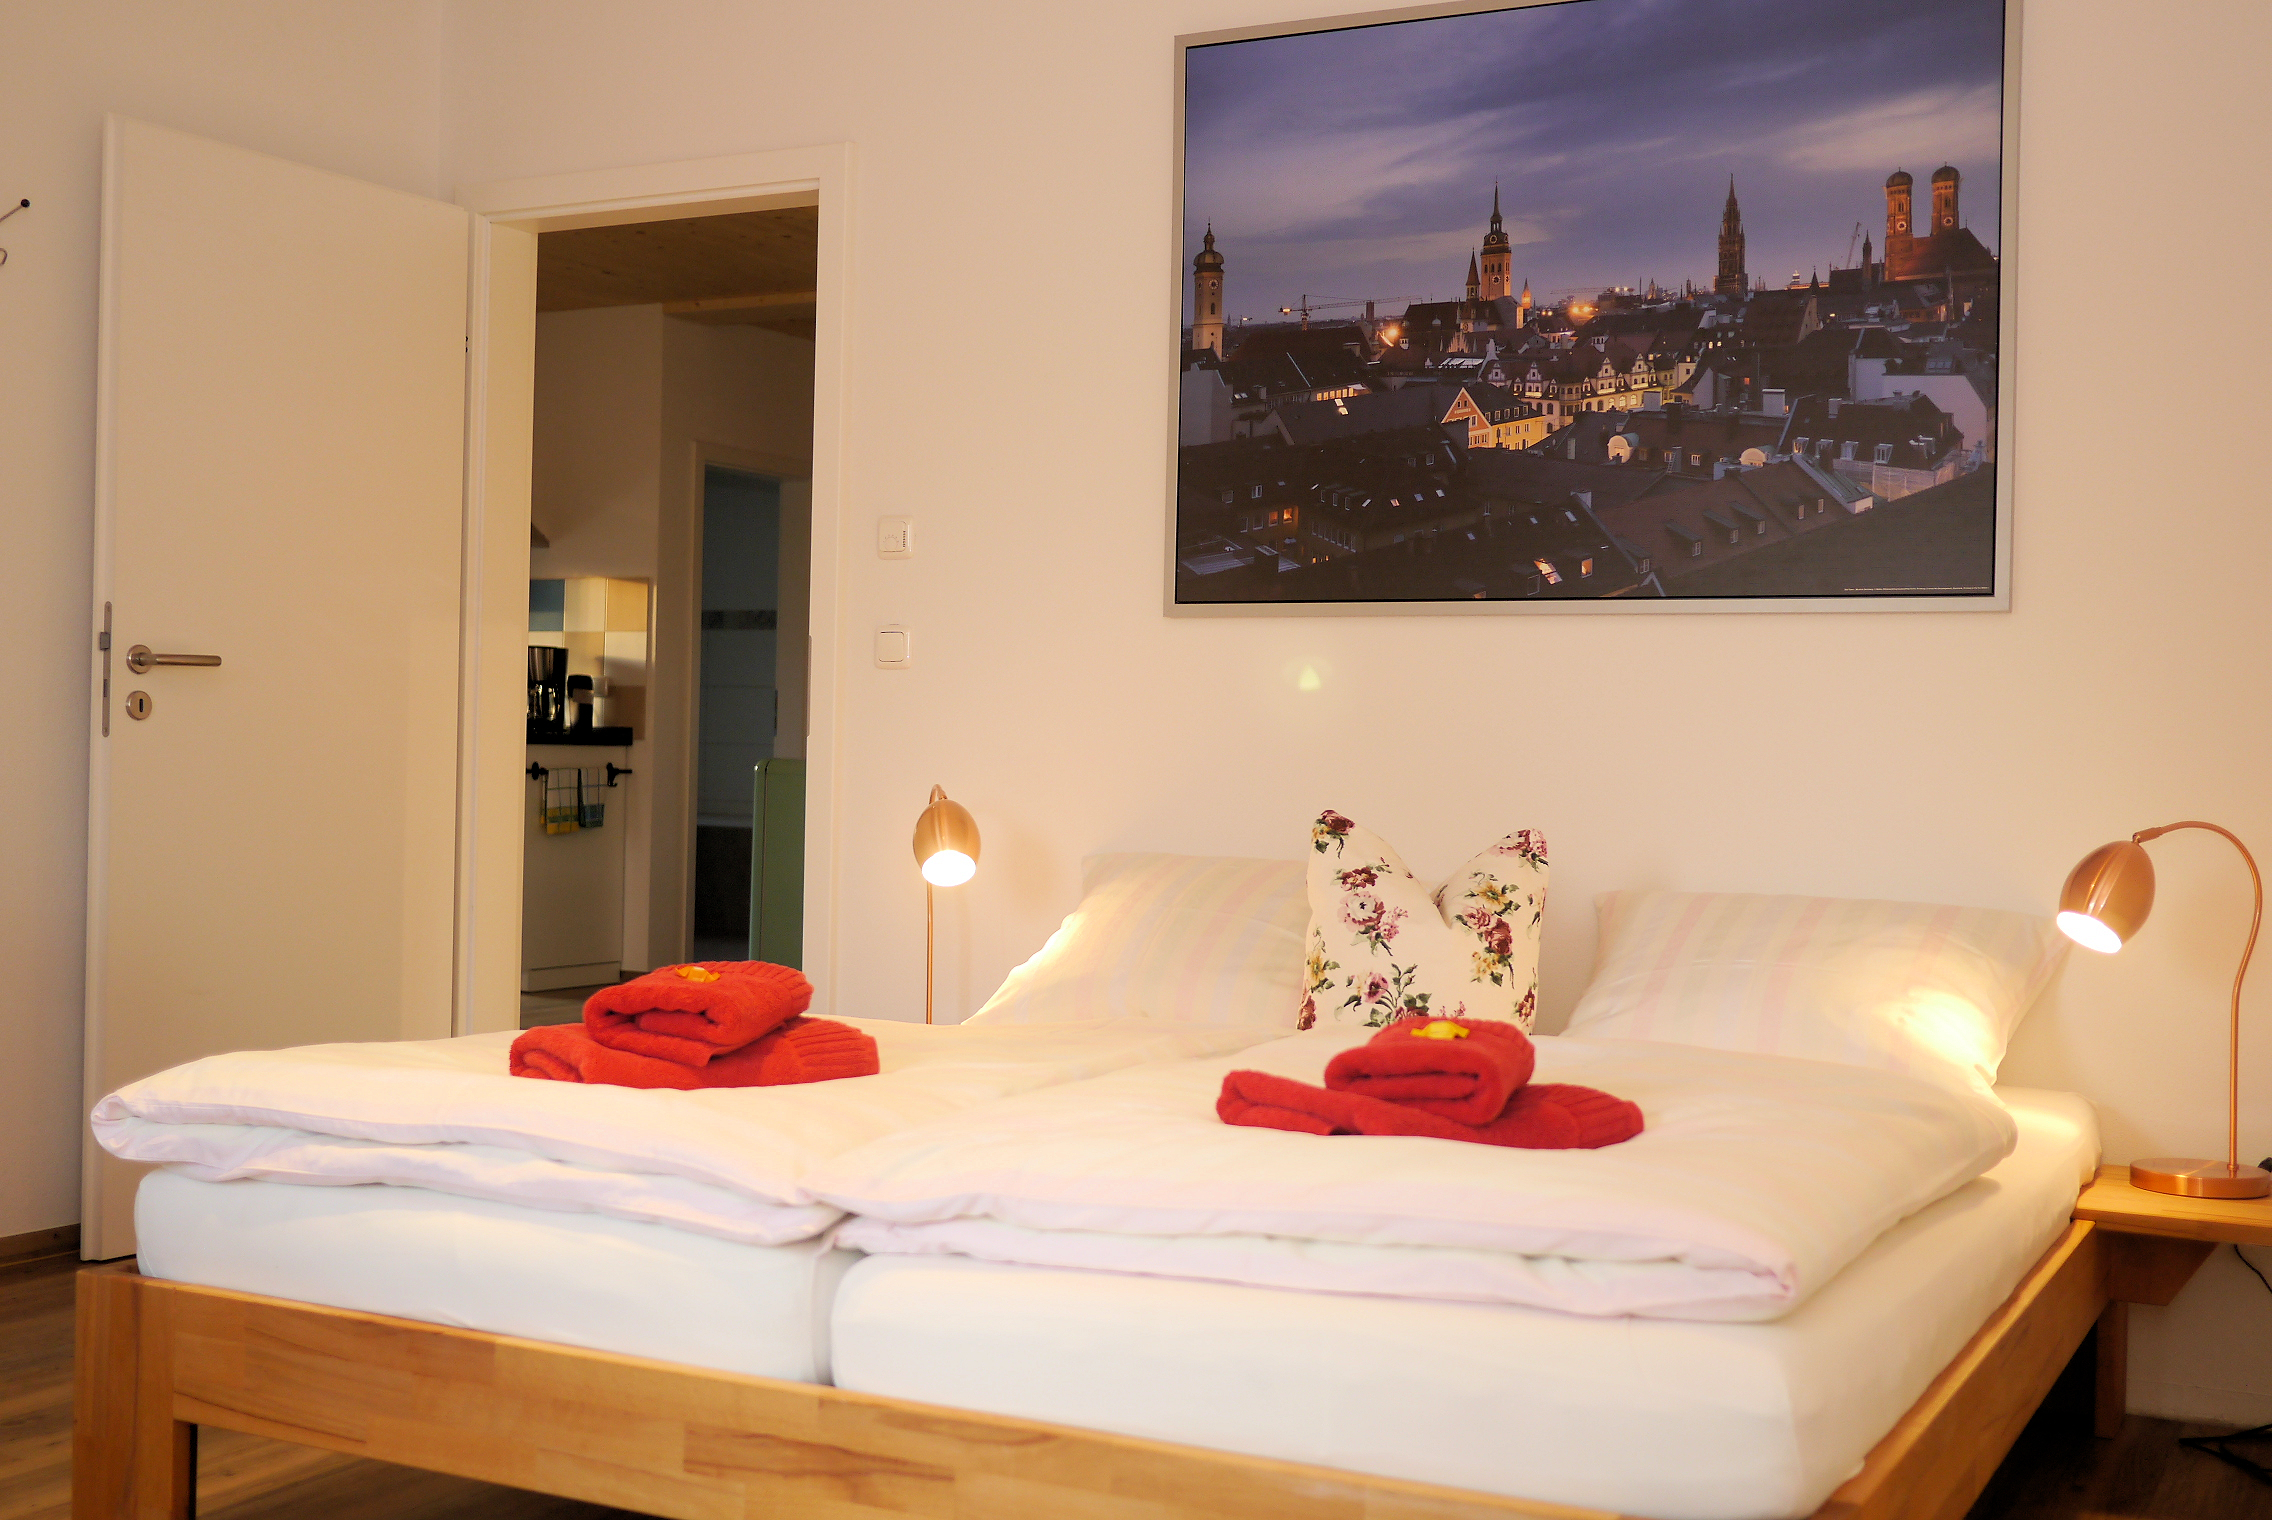 Apt. 1 Enjoy your holiday in the spacious bedroom.